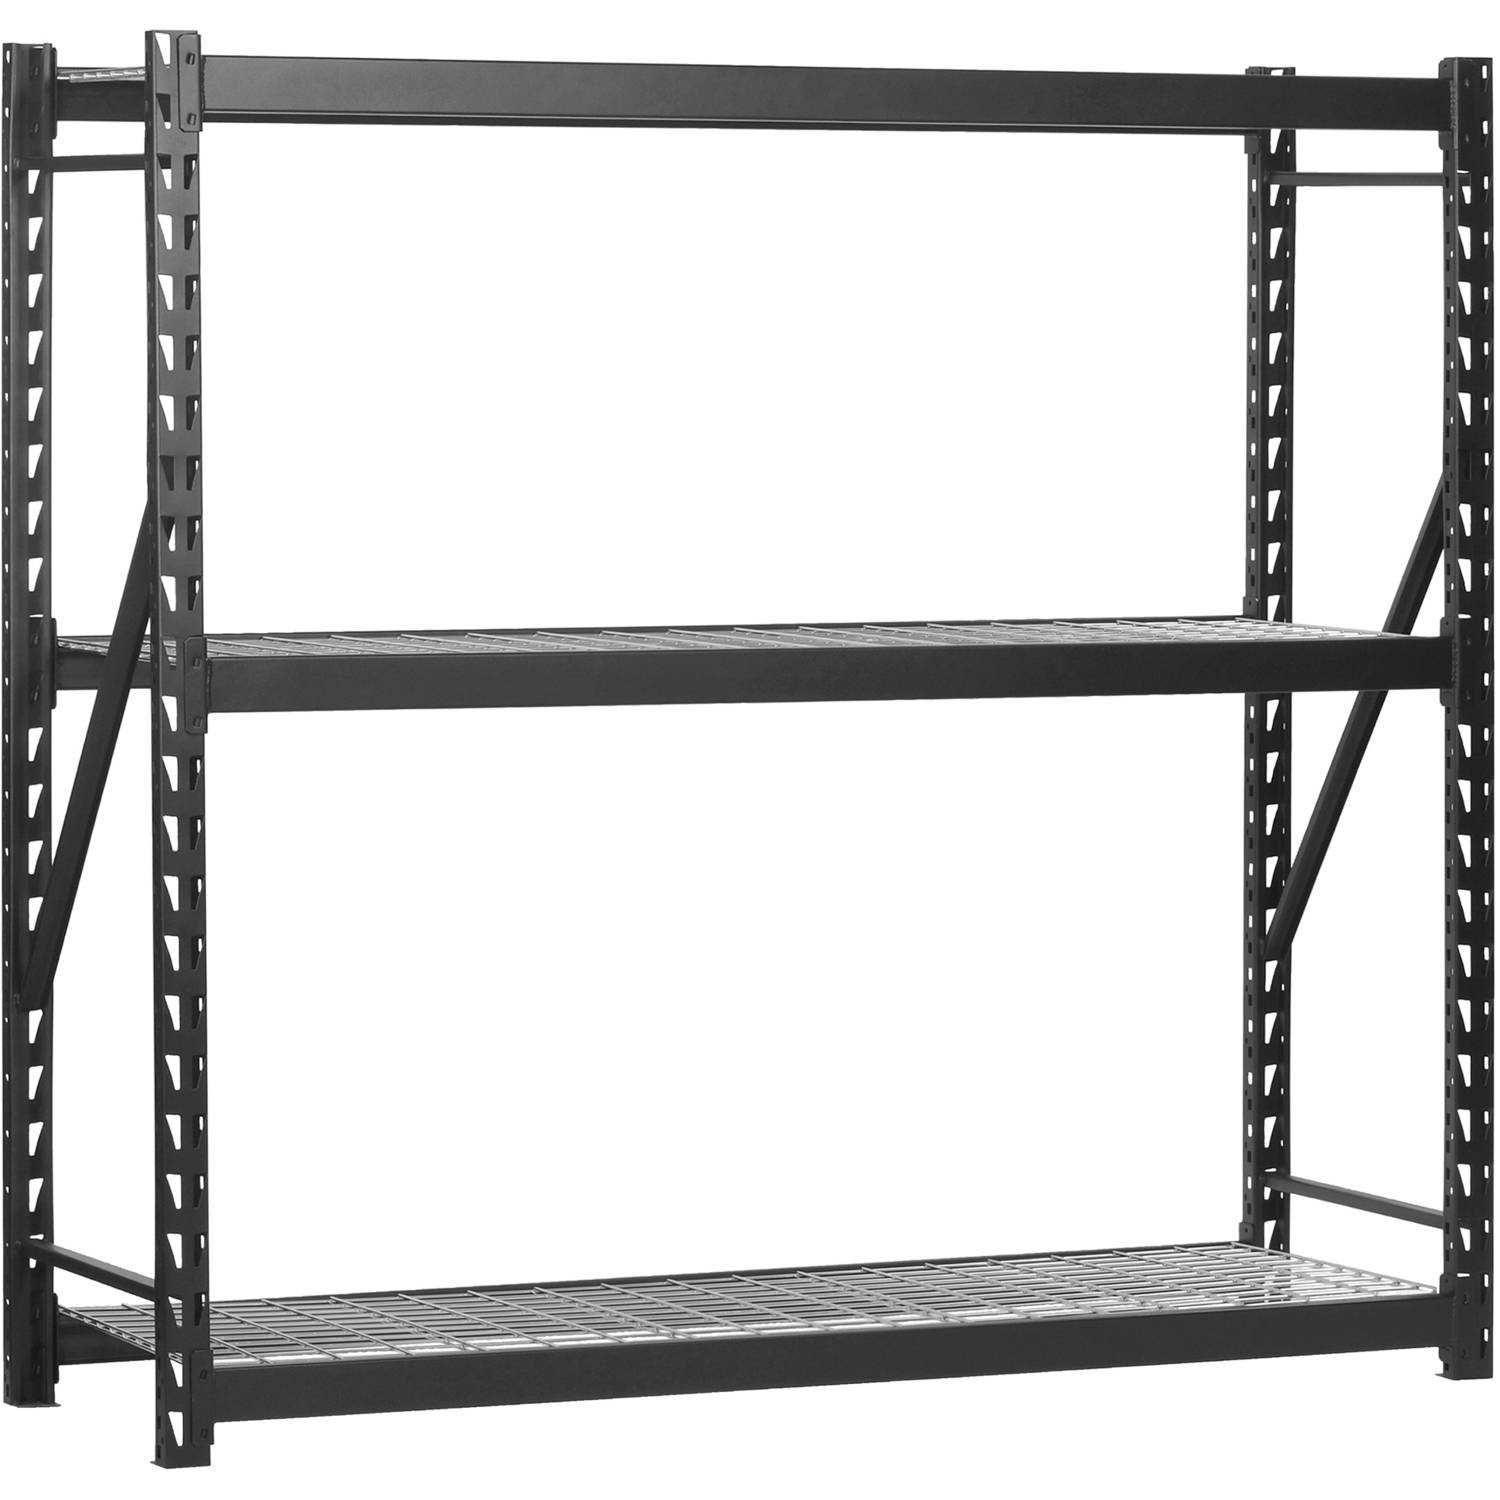 Edsal 72'H x 77'L x 24'W Steel Welded Storage Rack, Black